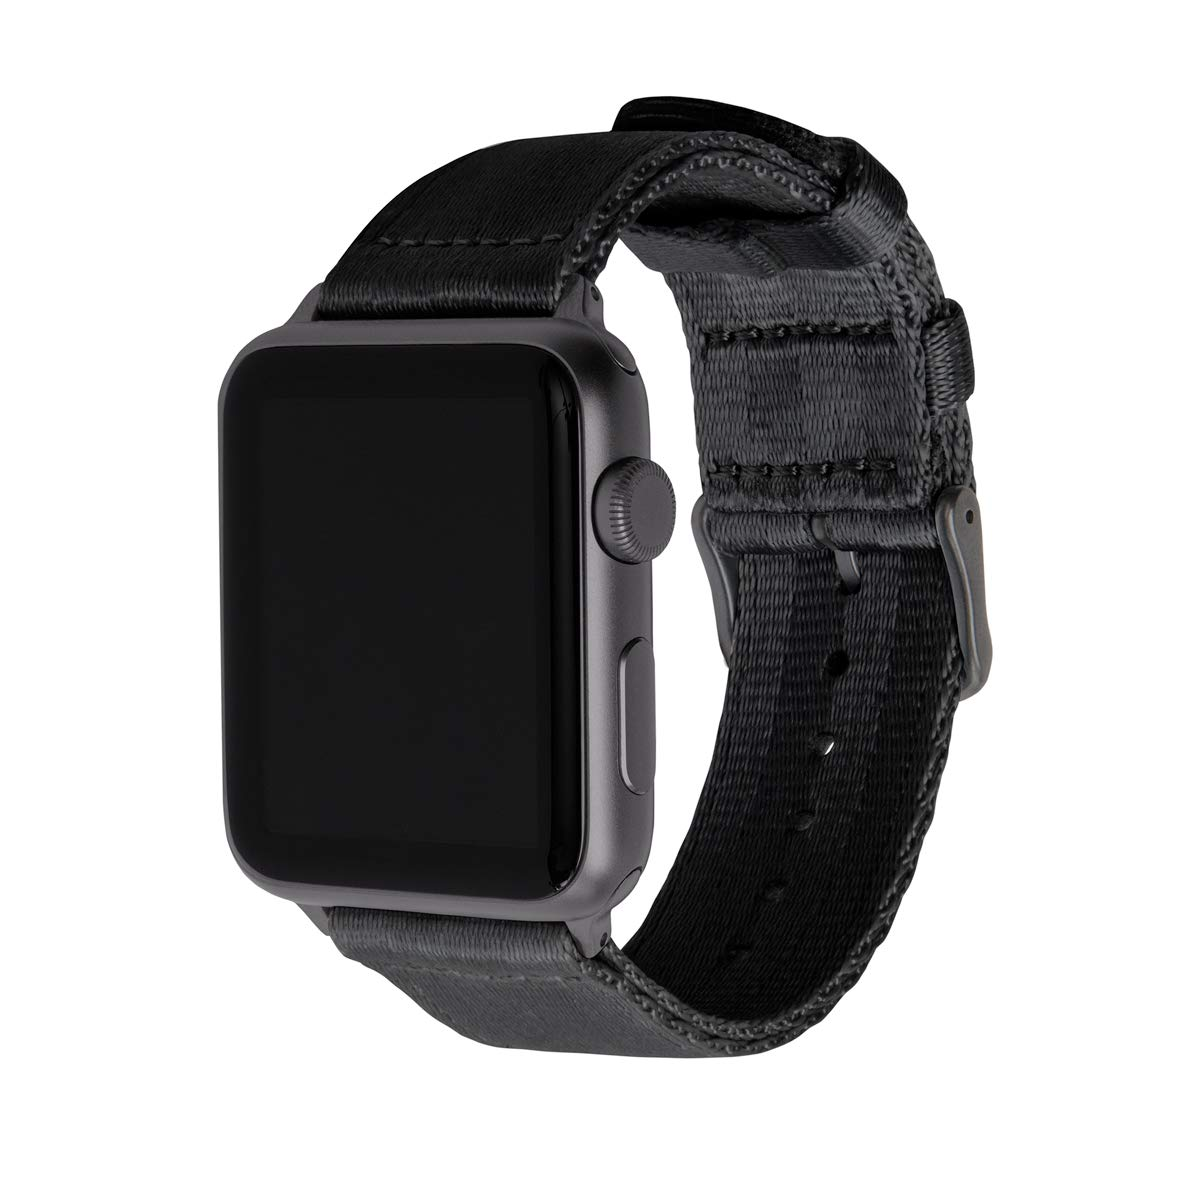 Archer Watch Straps Seat Belt Nylon Watch Bands for Apple Watch (Black, Space Gray, 42mm) by Archer Watch Straps